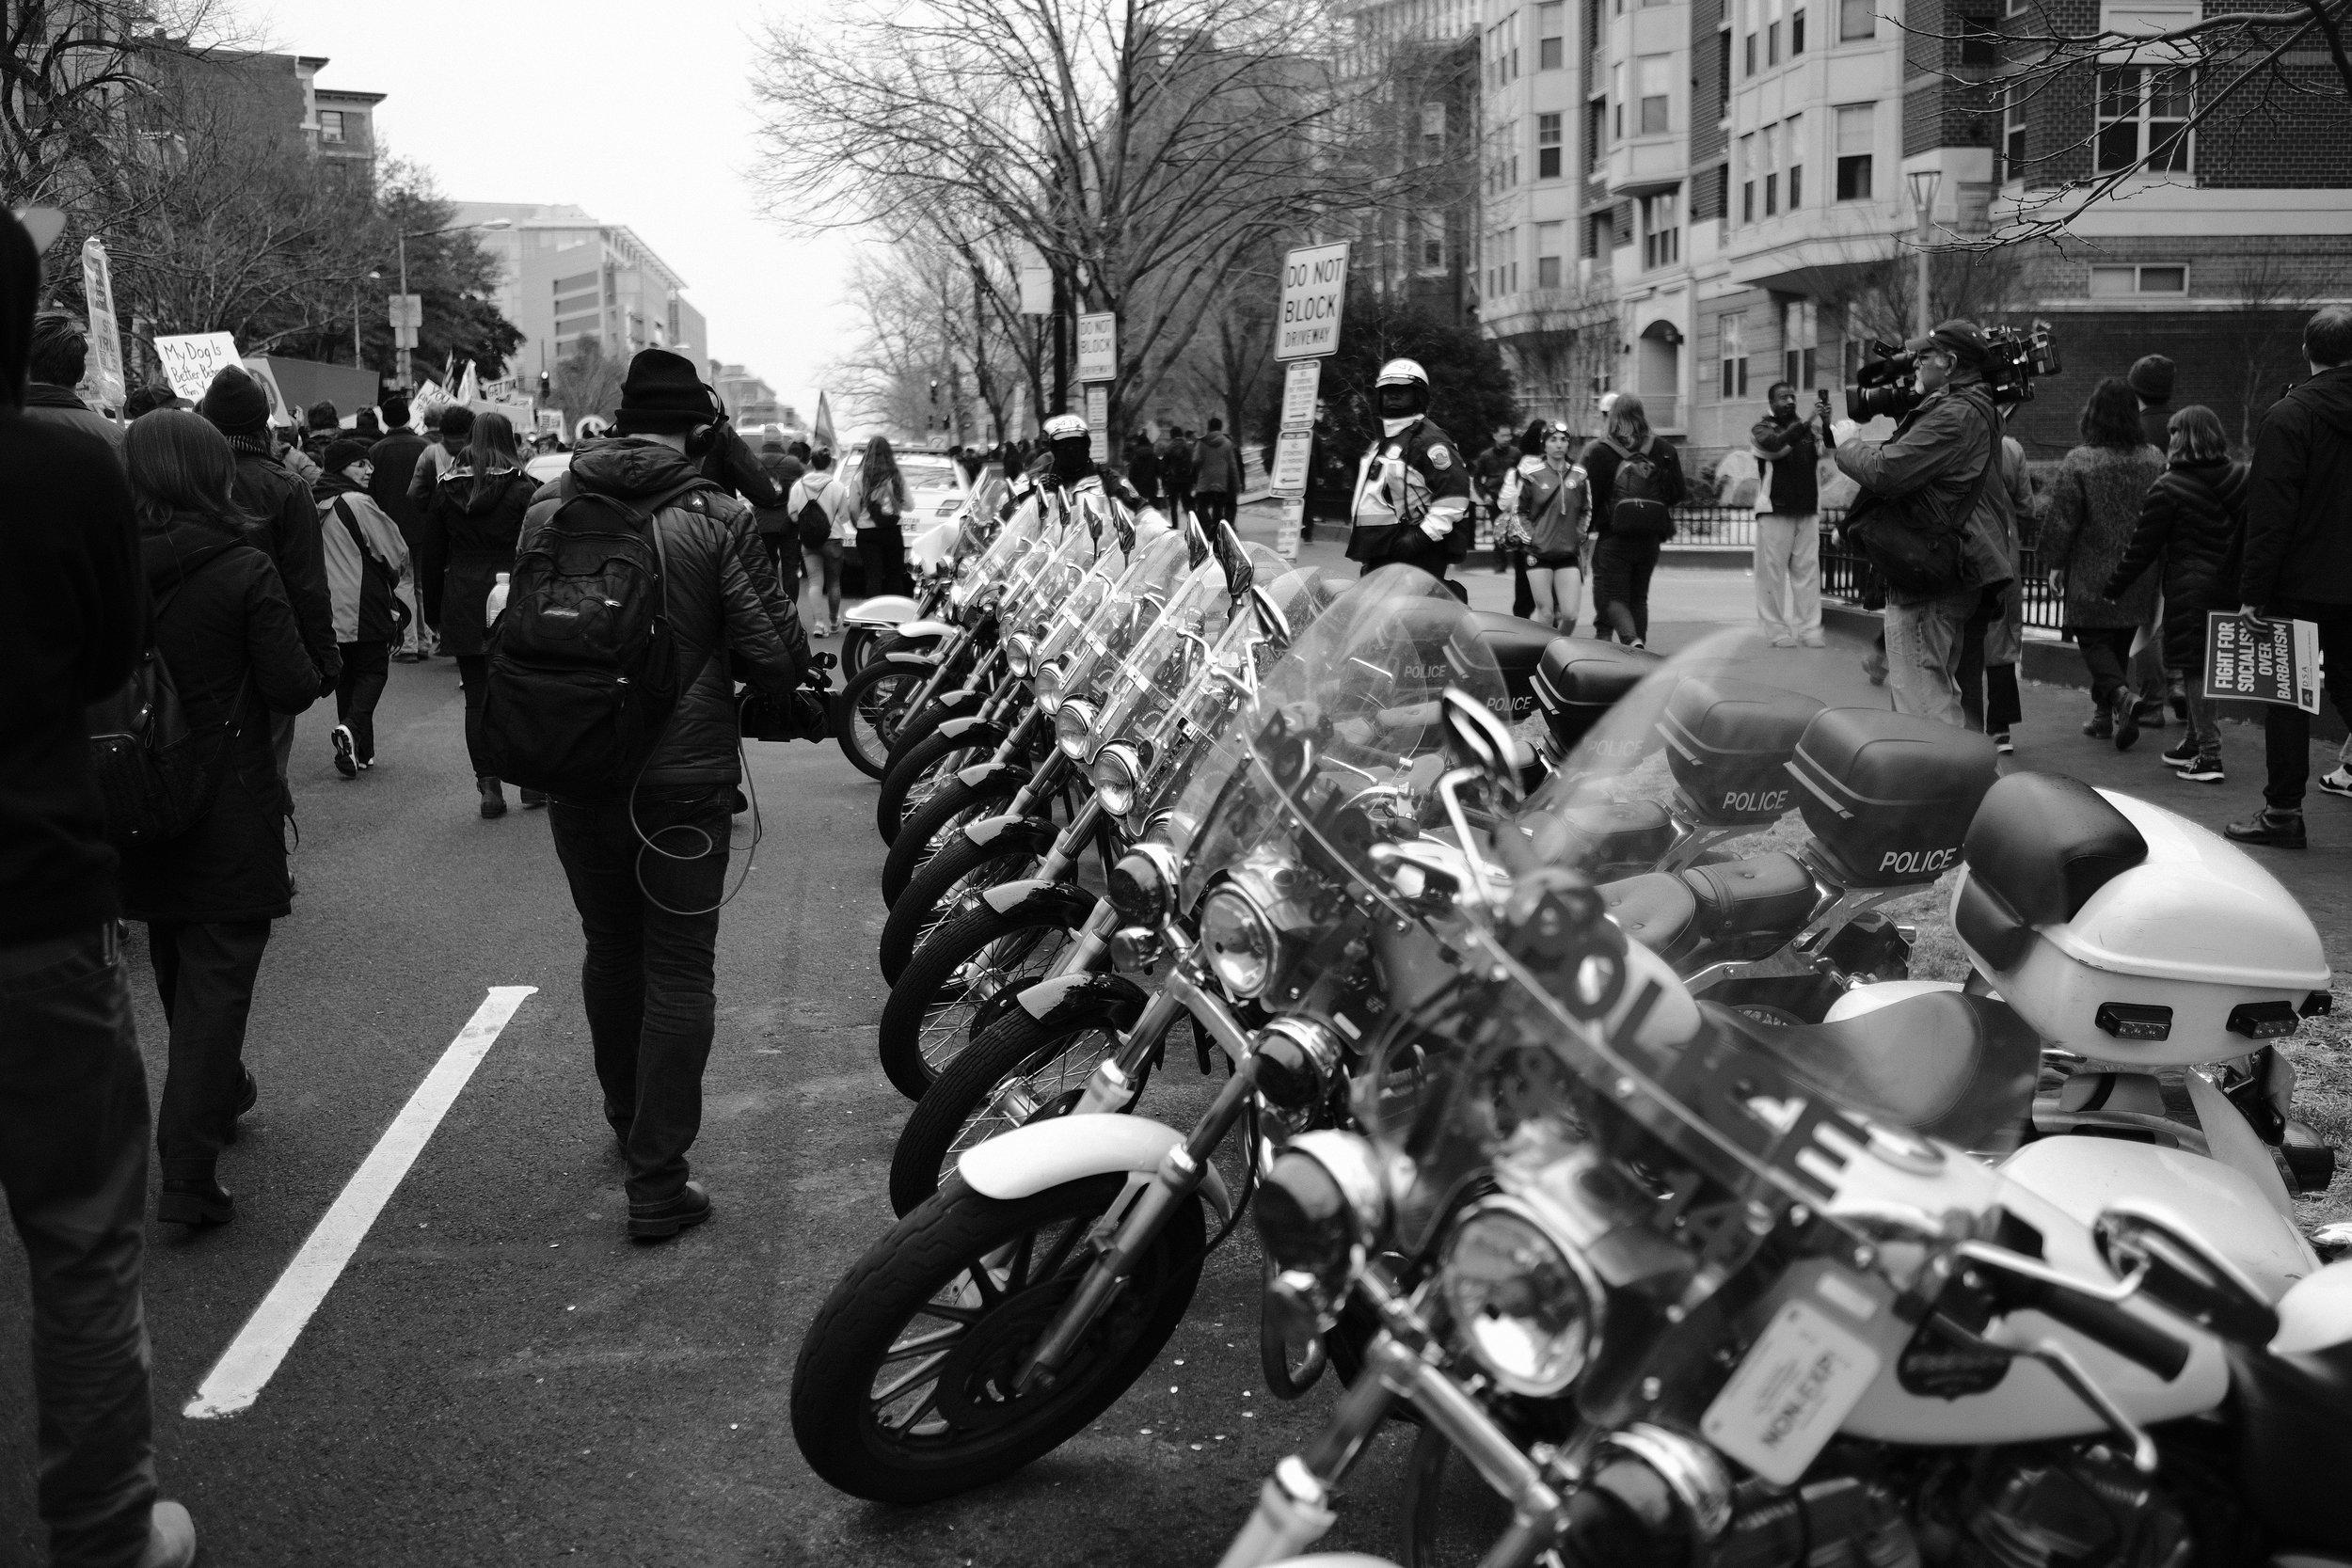 The police presence was heavy in D.C., but I was never searched or in fear for my equipment.